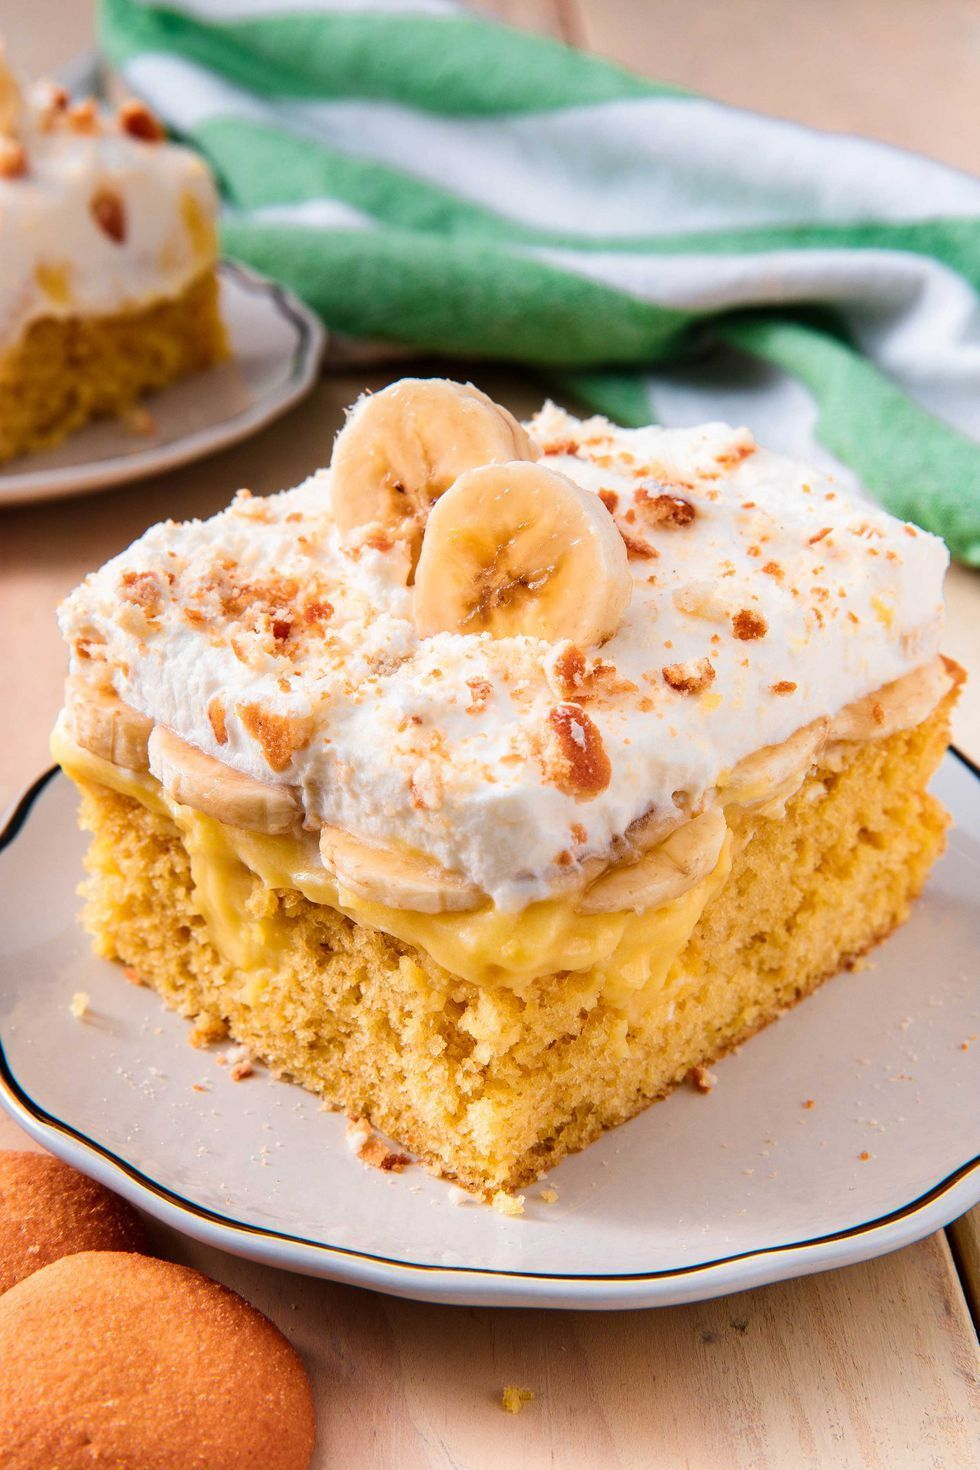 23 Easy Banana Recipes Best Ways To Use Ripe Bananas